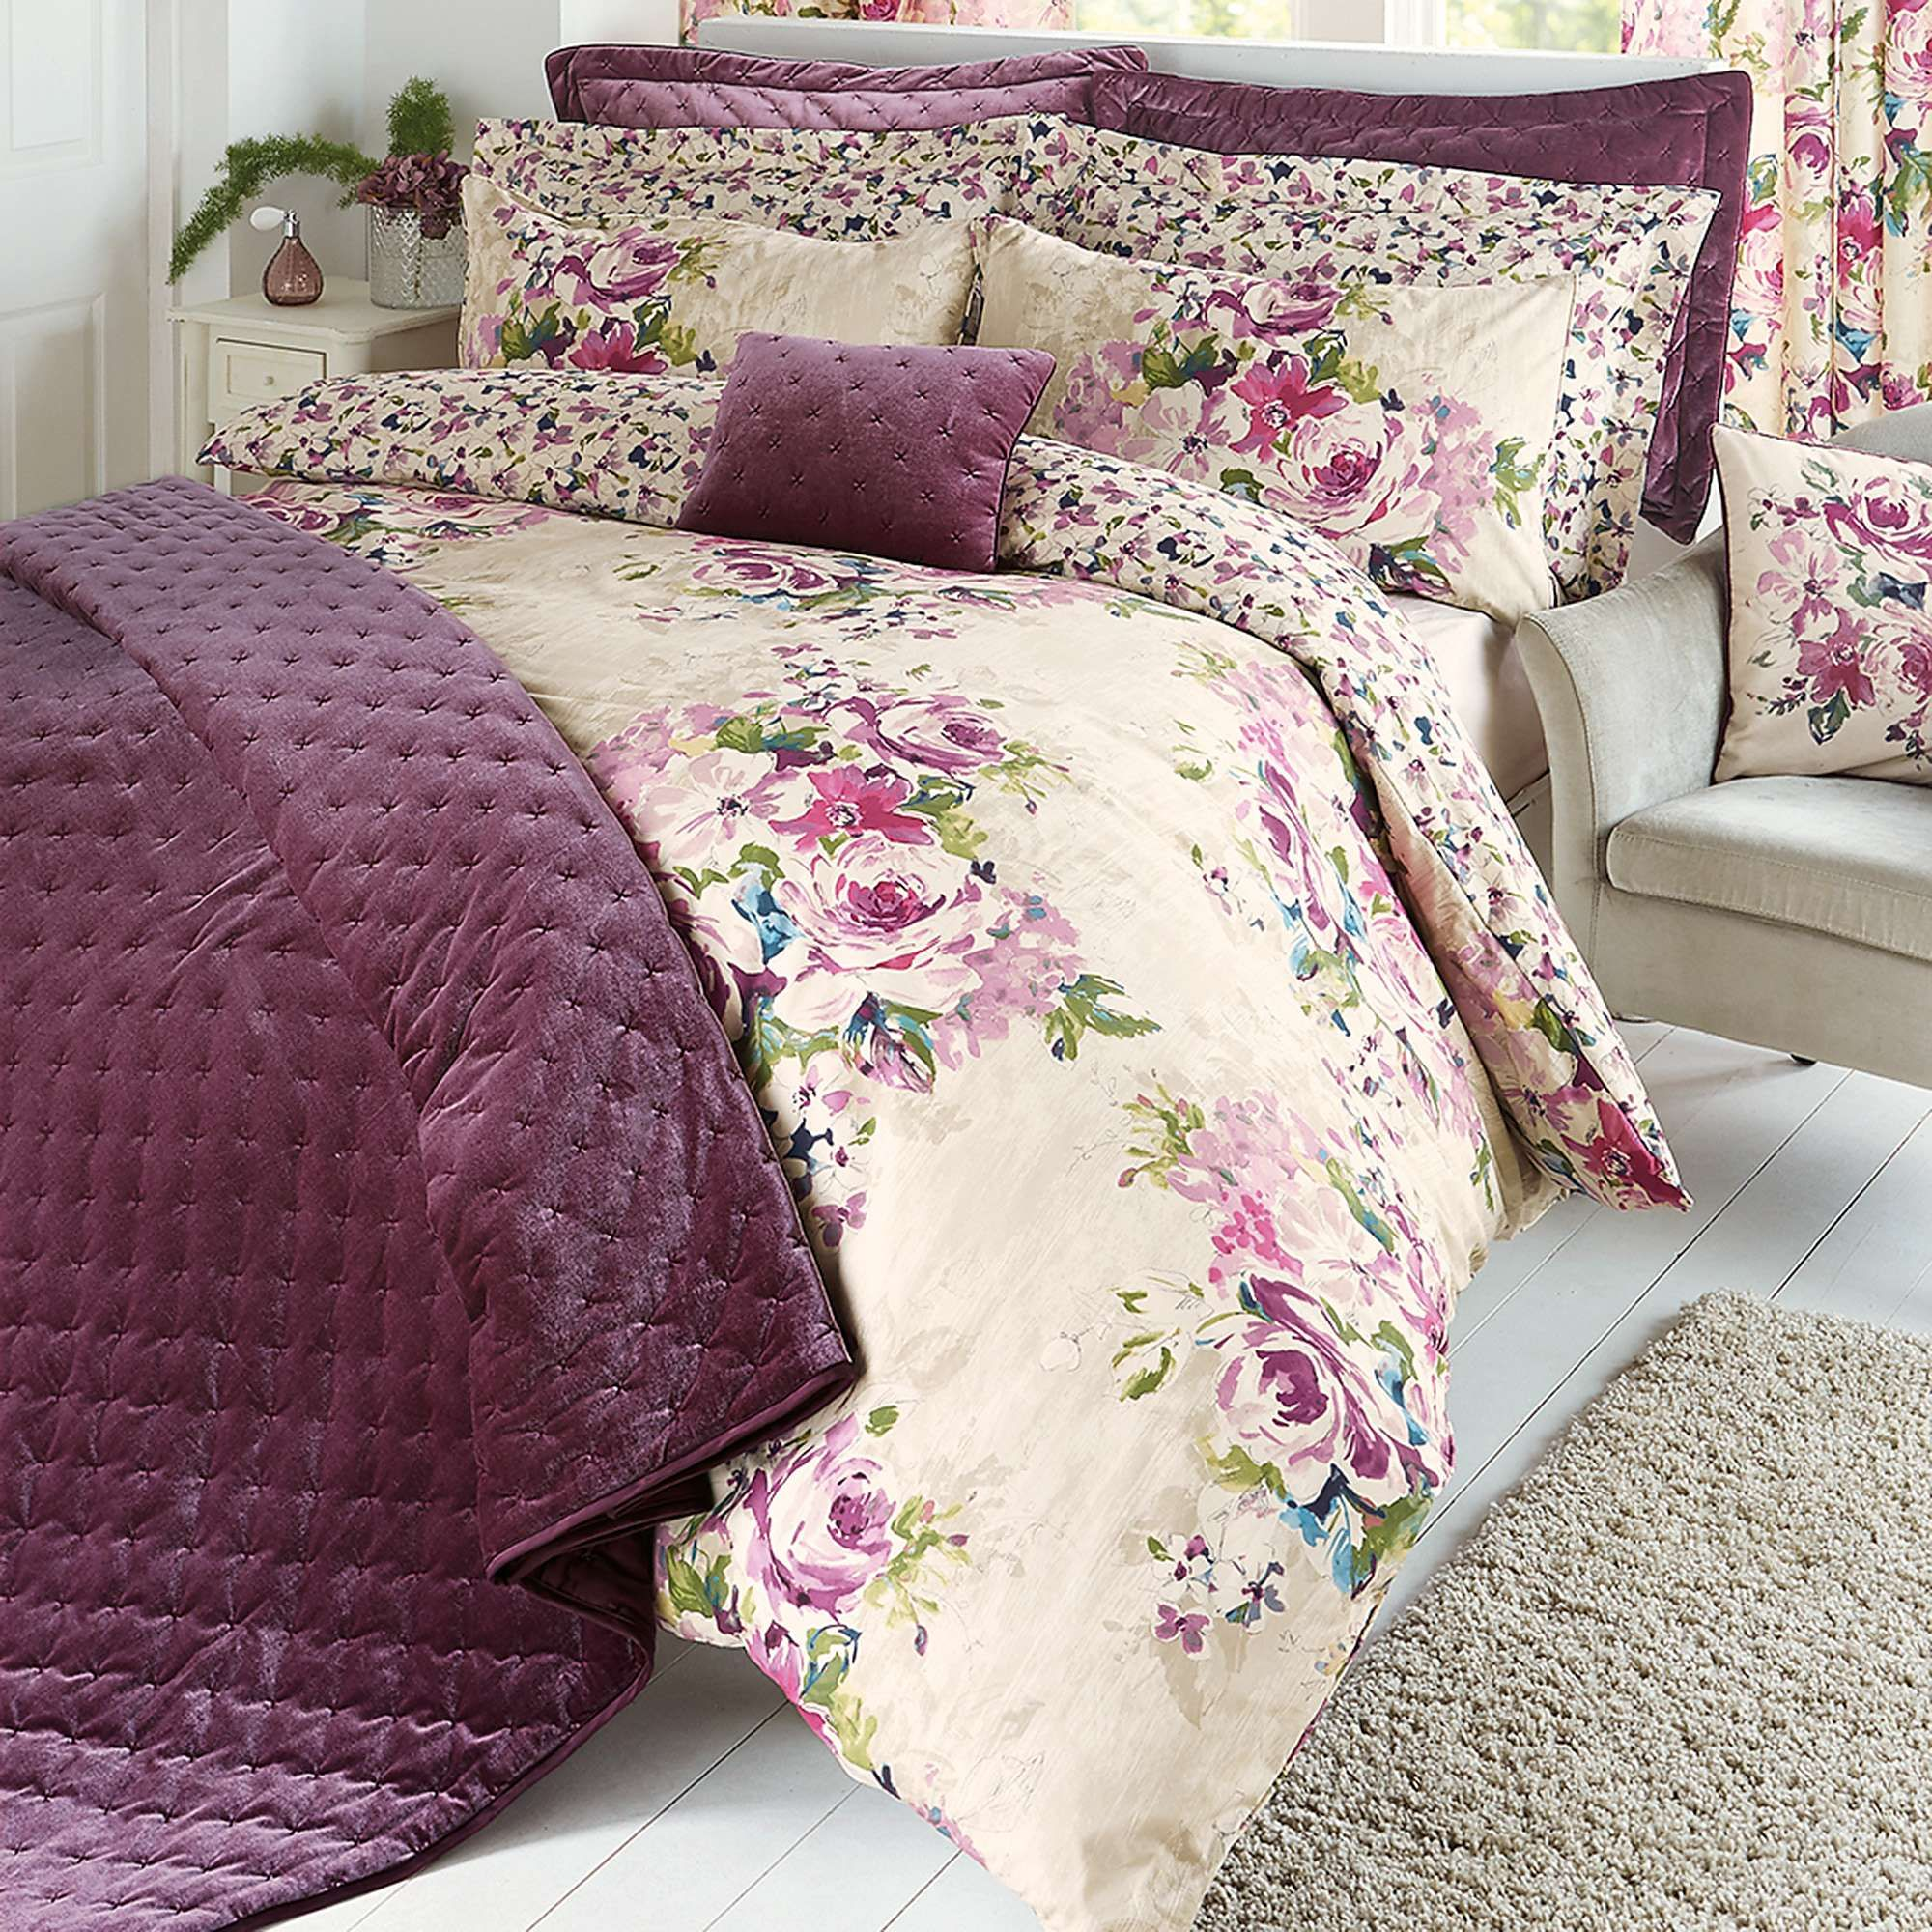 grey quilts plum silver quilt queen sets comforter violet full black set teal and size lavender pink of comforters purple yellow white bedding coverlets coverlet